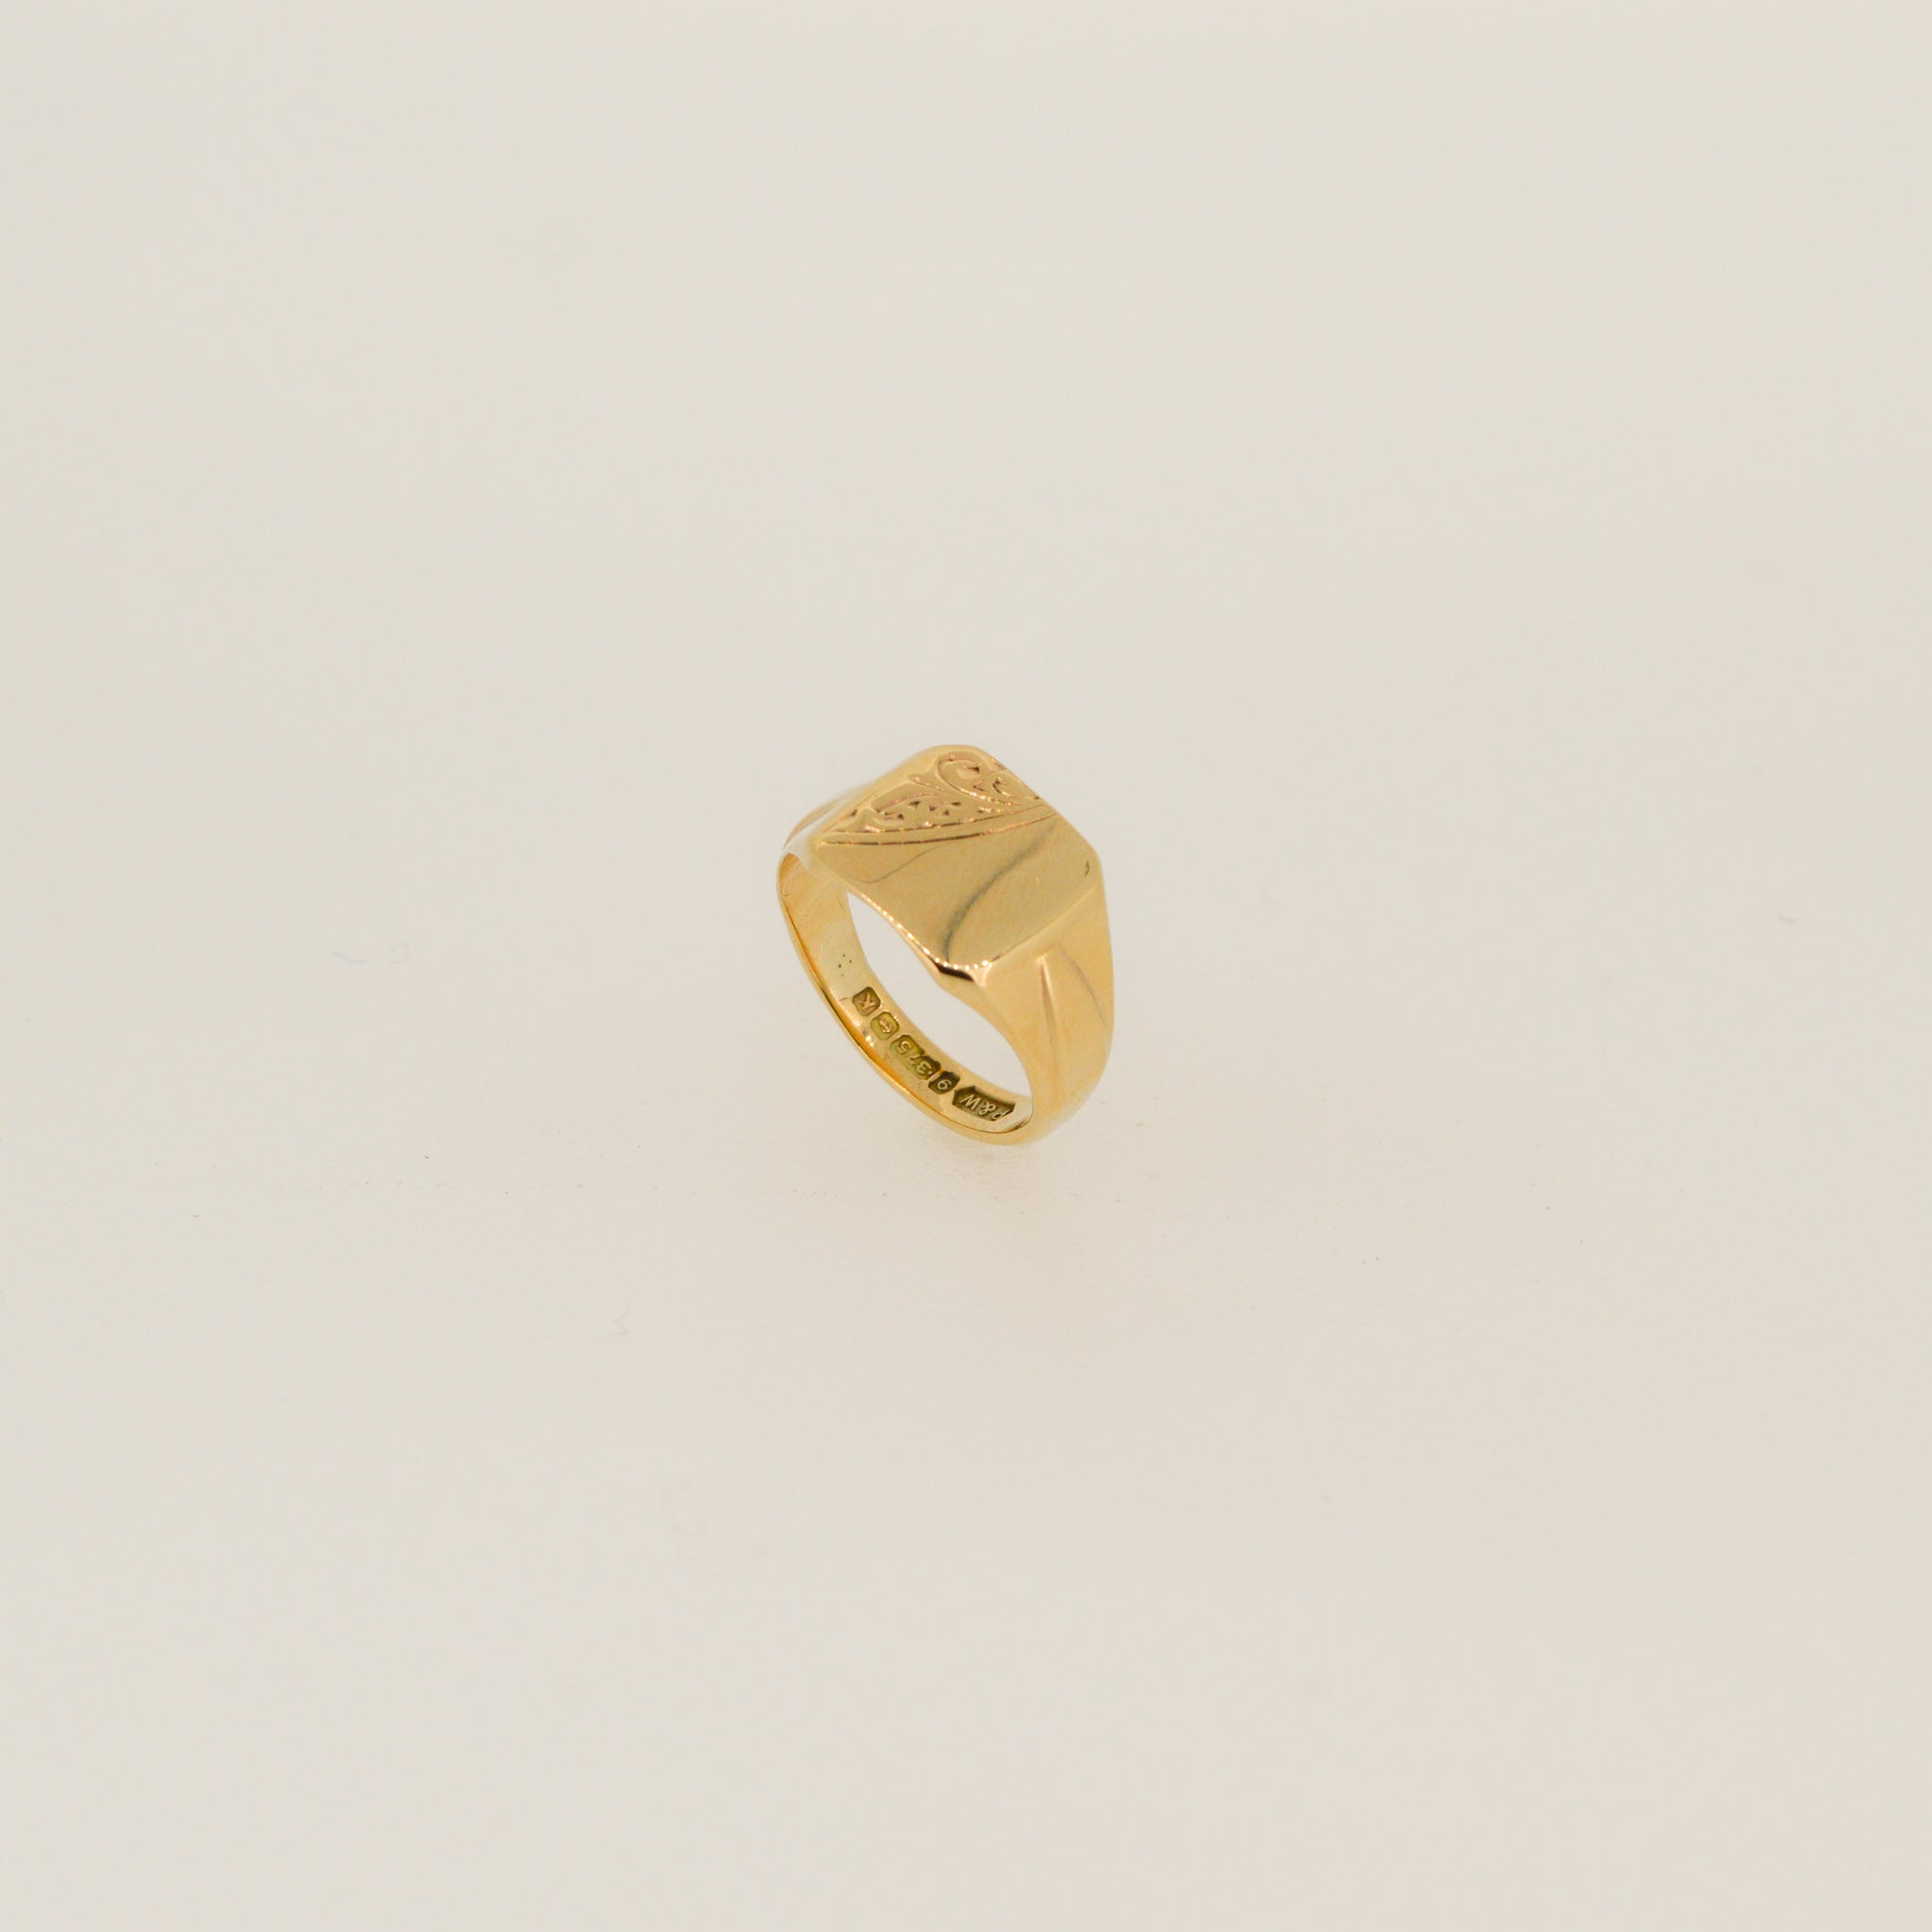 Part Patterned Signet Ring